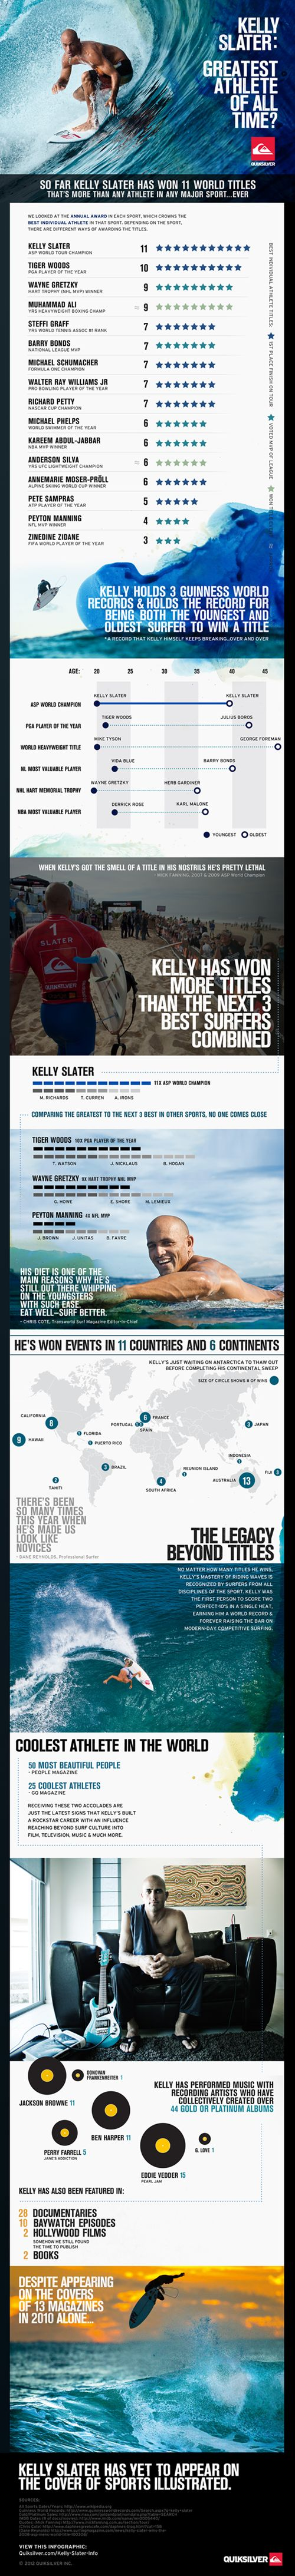 Kelly Slater - Greatest Athlete of All Time